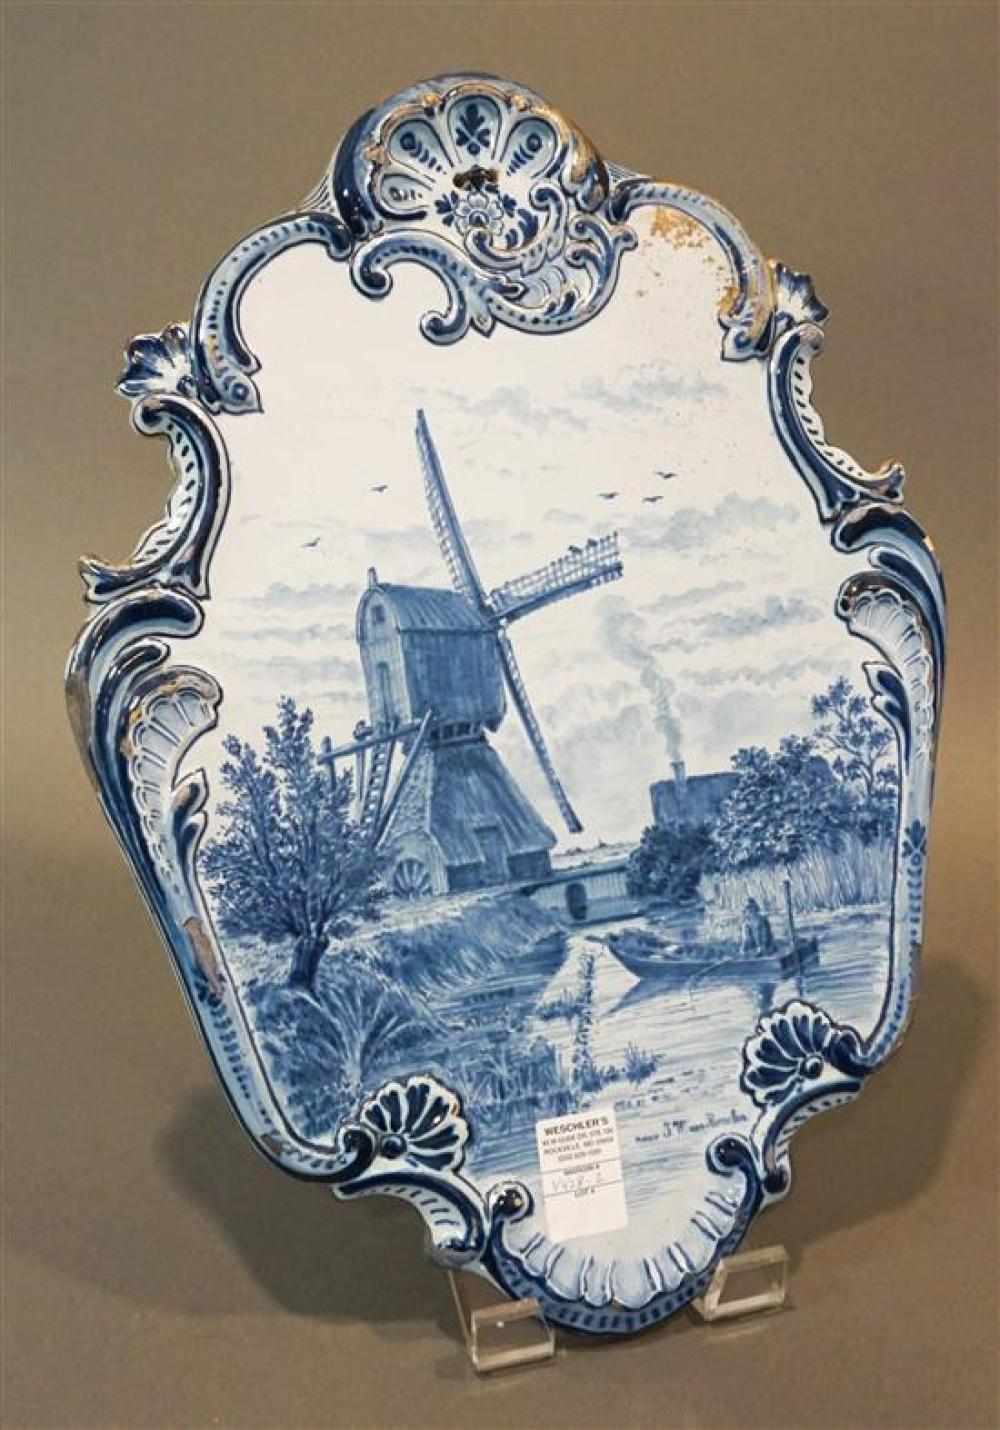 Delft Plaque of Windmill and Fisherman, Signed J.W. Van Borselen, (some losses), 22 x 16 in